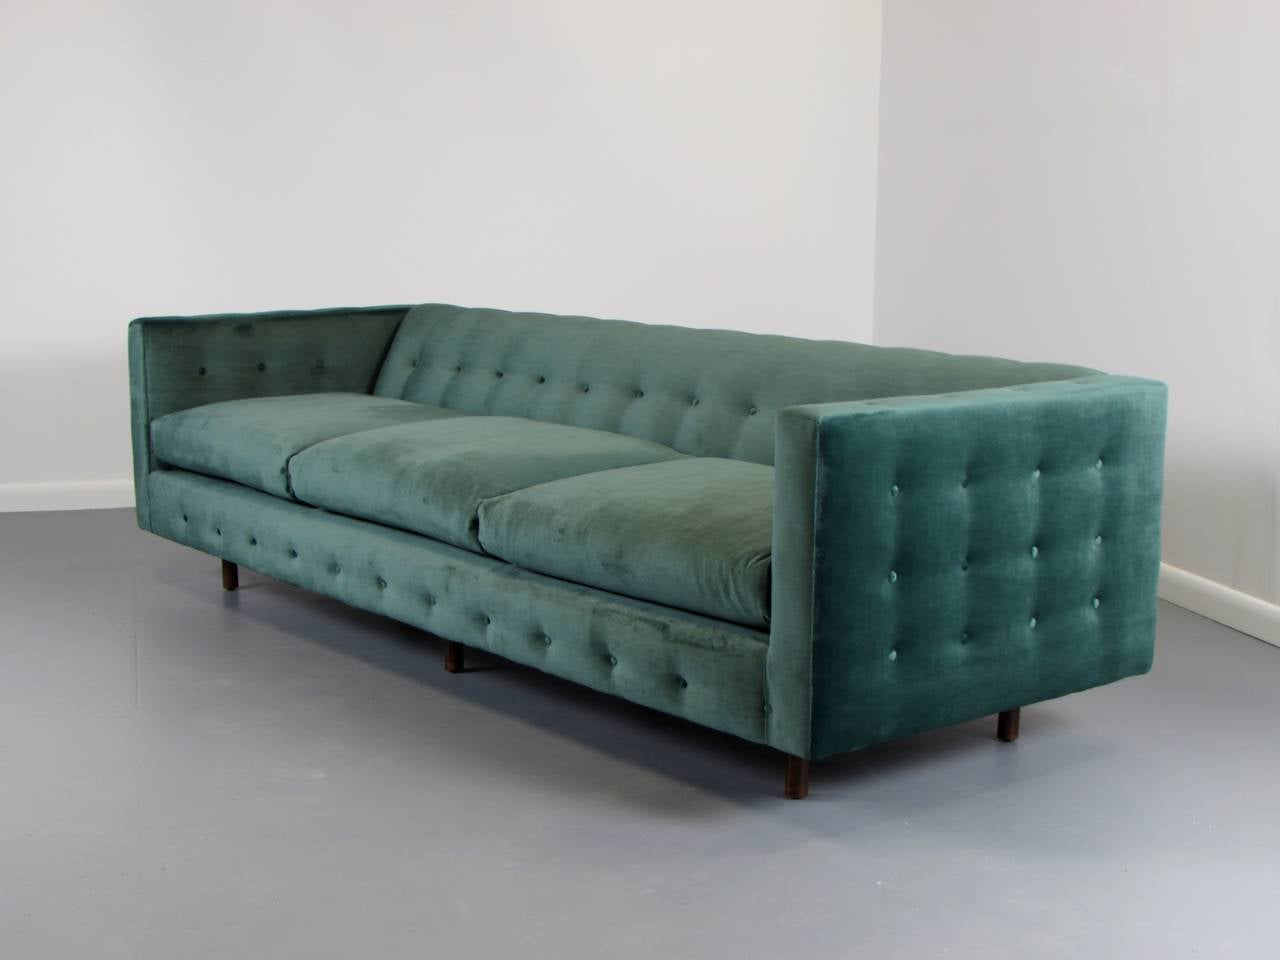 Lavish Velvet Tuxedo Sofa With Button Detail By Harvey Probber, Signed.  This Sofa Is